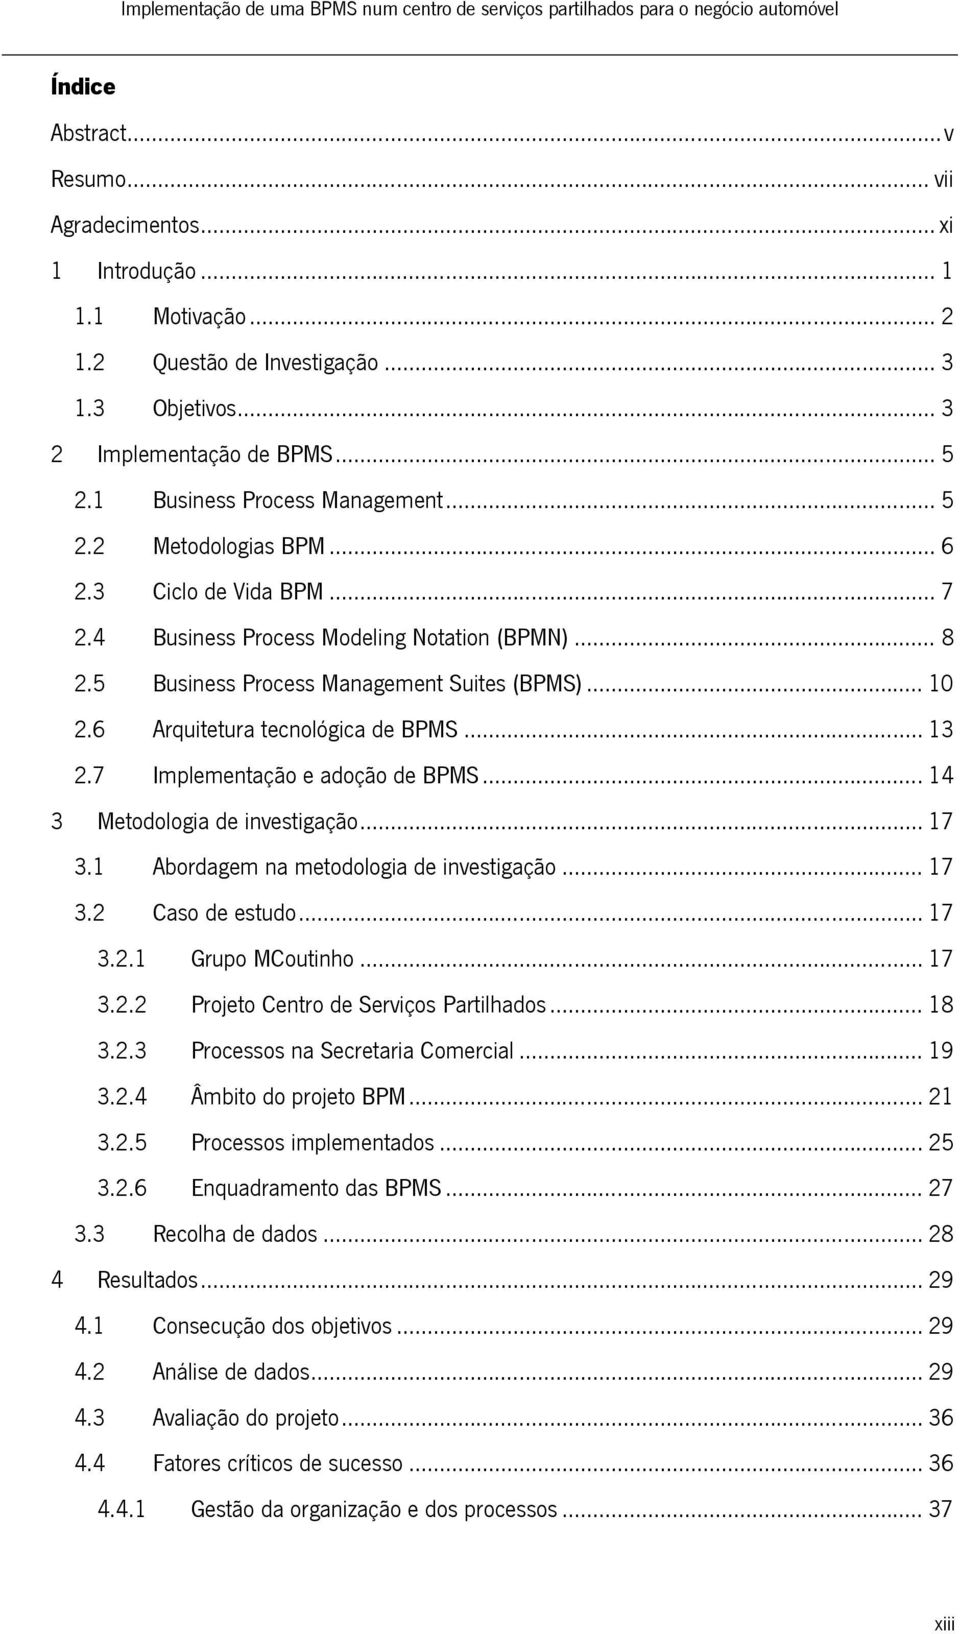 4 Business Process Modeling Notation (BPMN)... 8 2.5 Business Process Management Suites (BPMS)... 10 2.6 Arquitetura tecnológica de BPMS... 13 2.7 Implementação e adoção de BPMS.